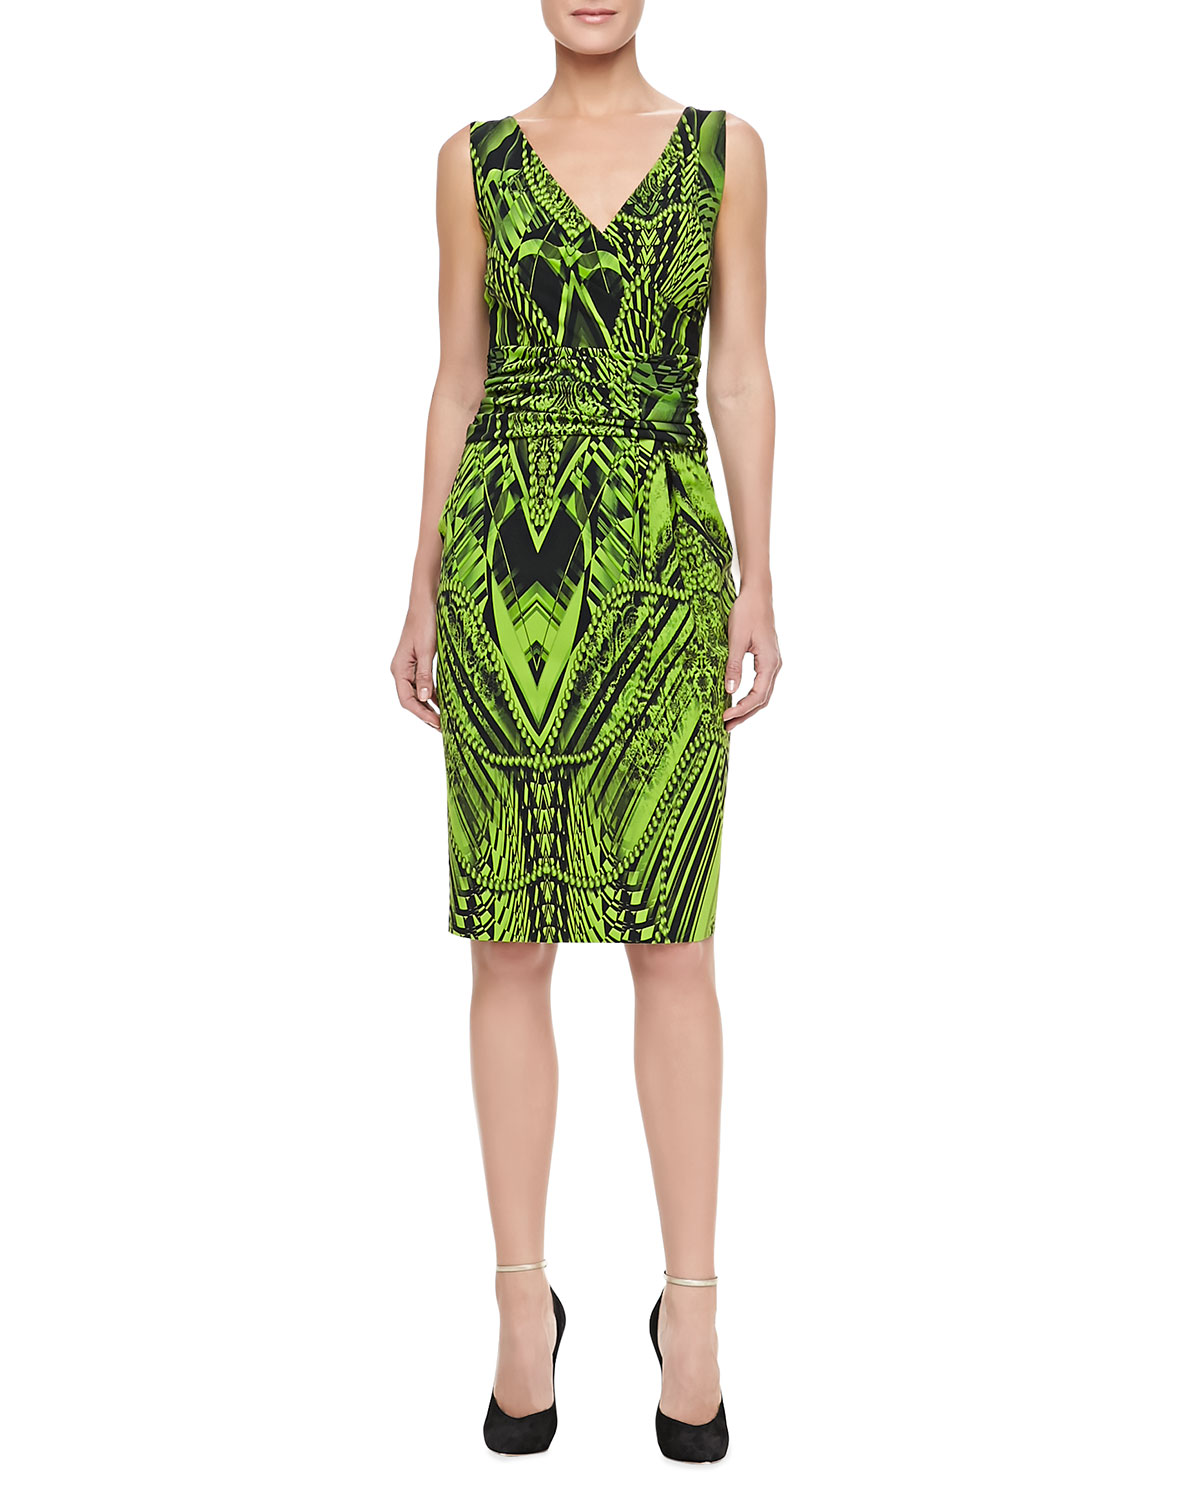 Chiara Boni The Most Popular Dress In America: La Petite Robe Di Chiara Boni Sleeveless Print Step-In